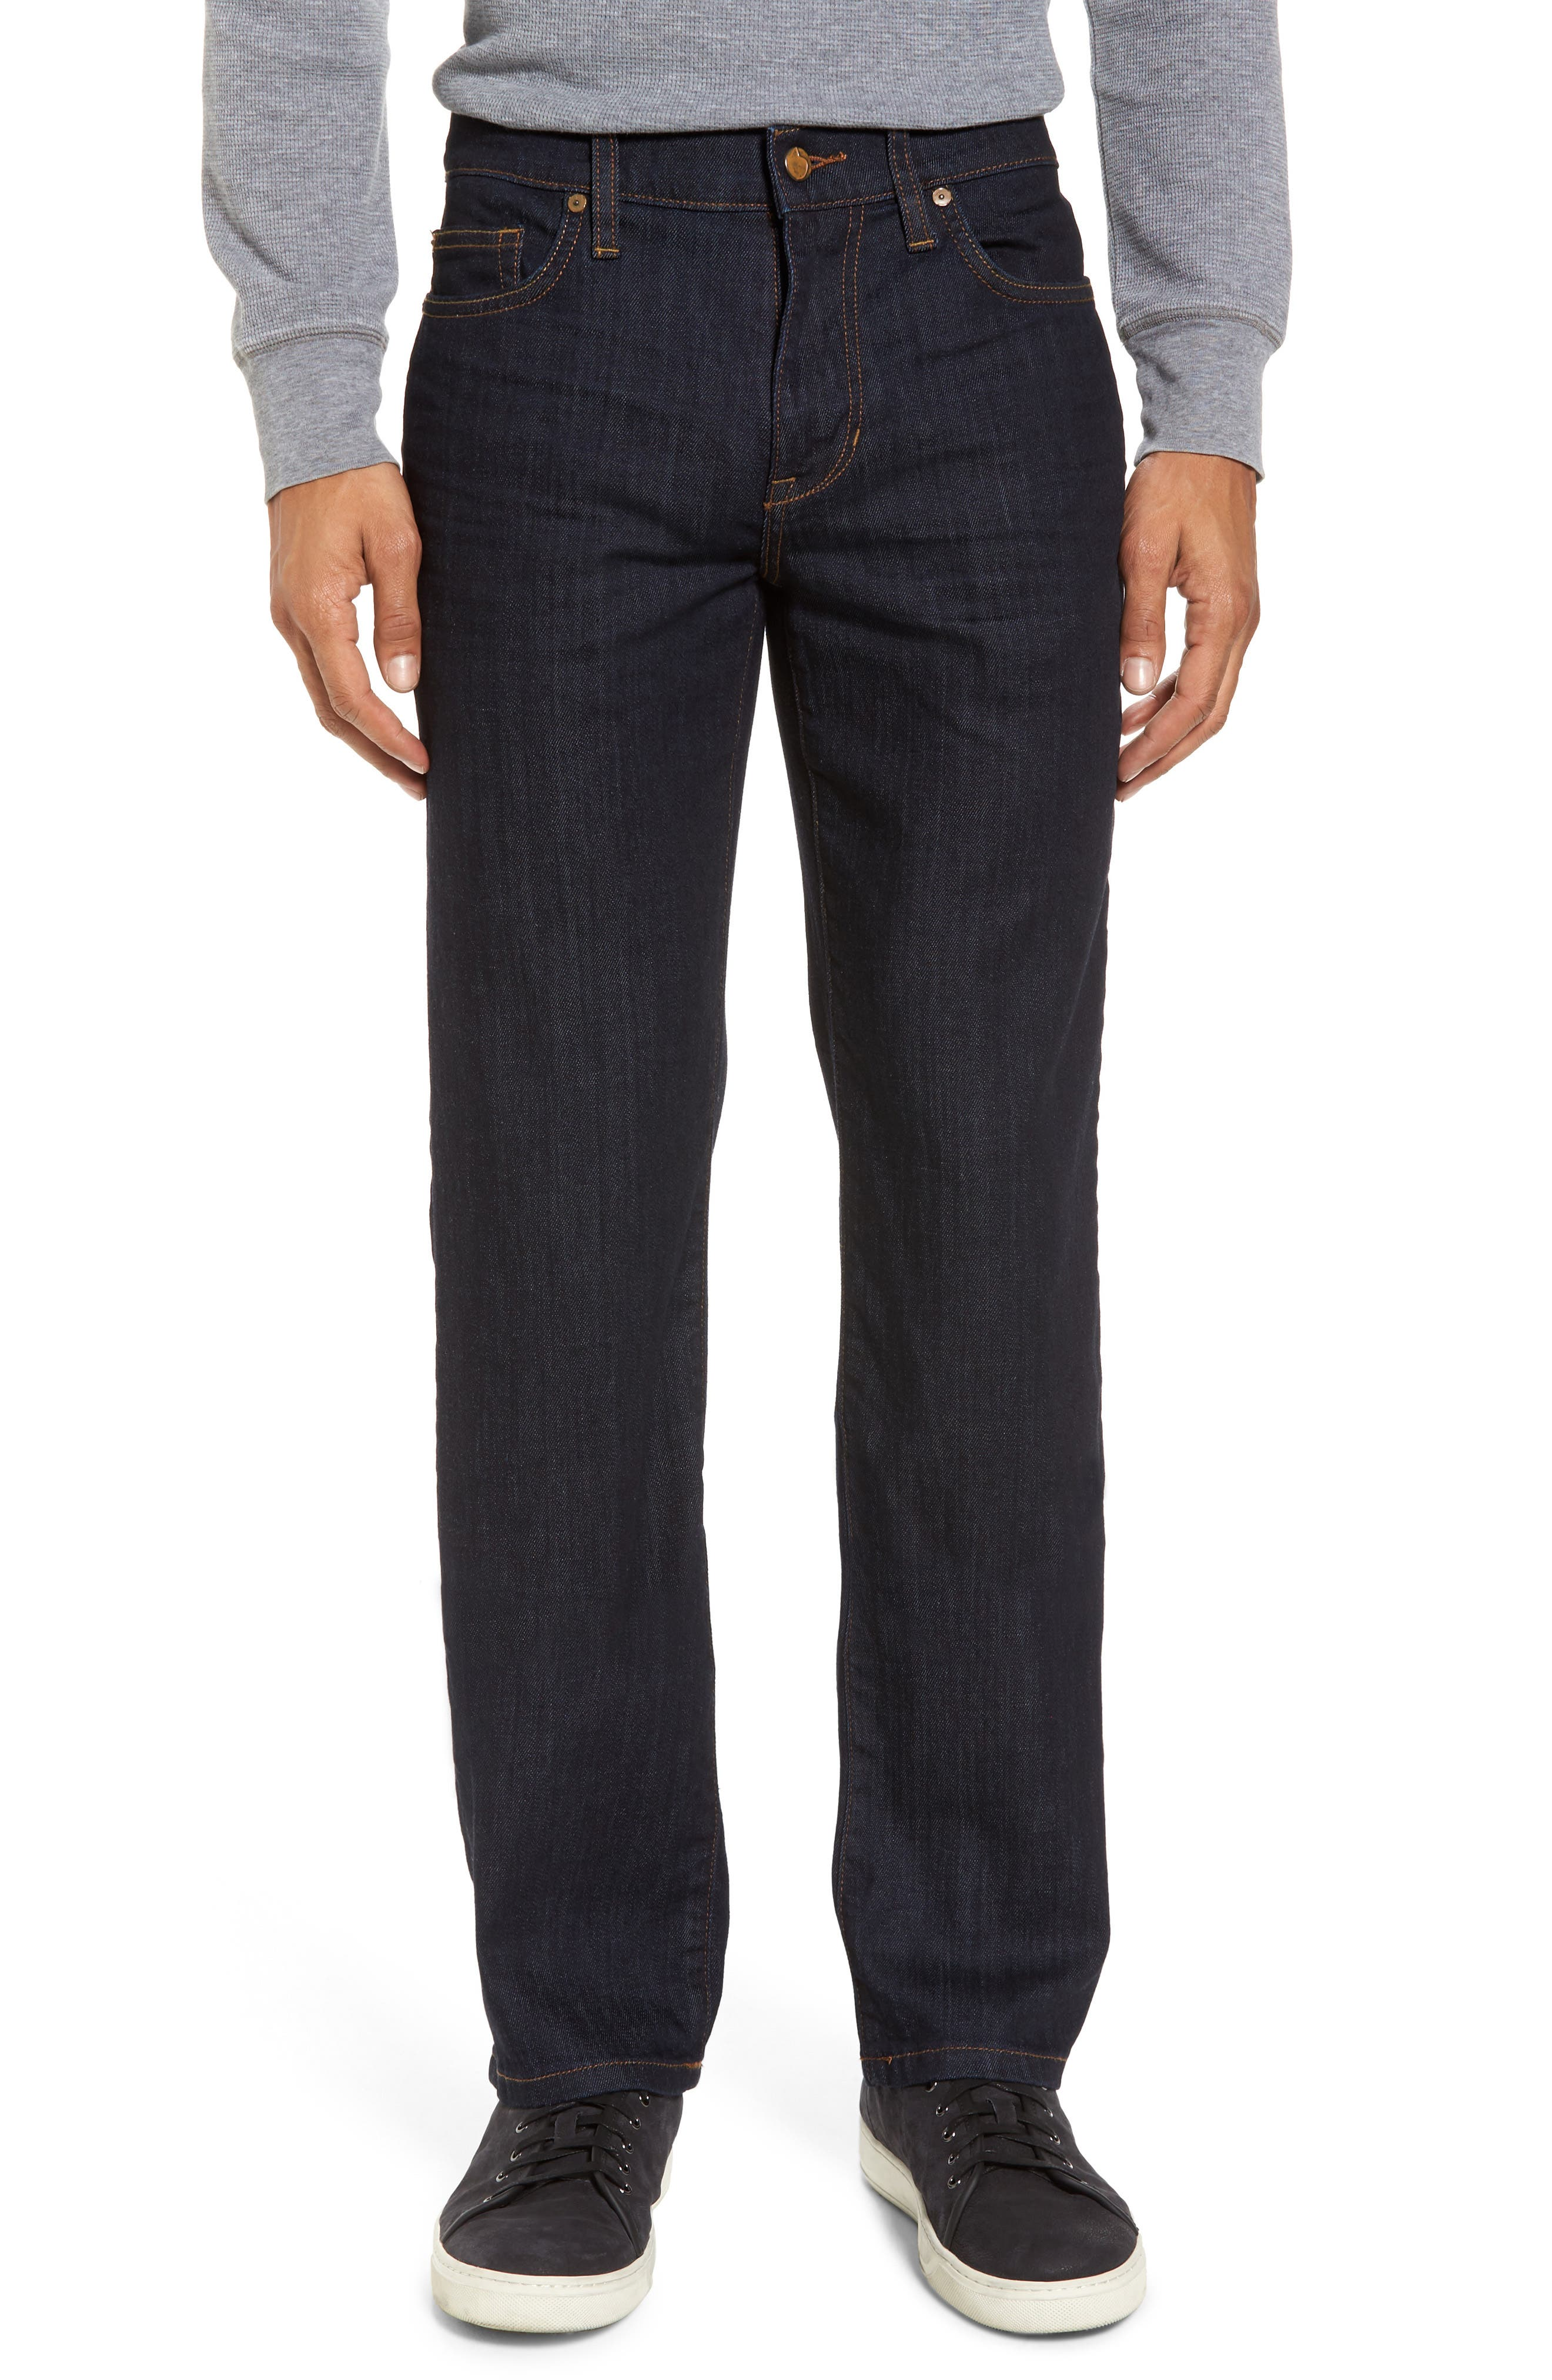 Alternate Image 1 Selected - Joe's Classic Straight Fit Jeans (Cabe)